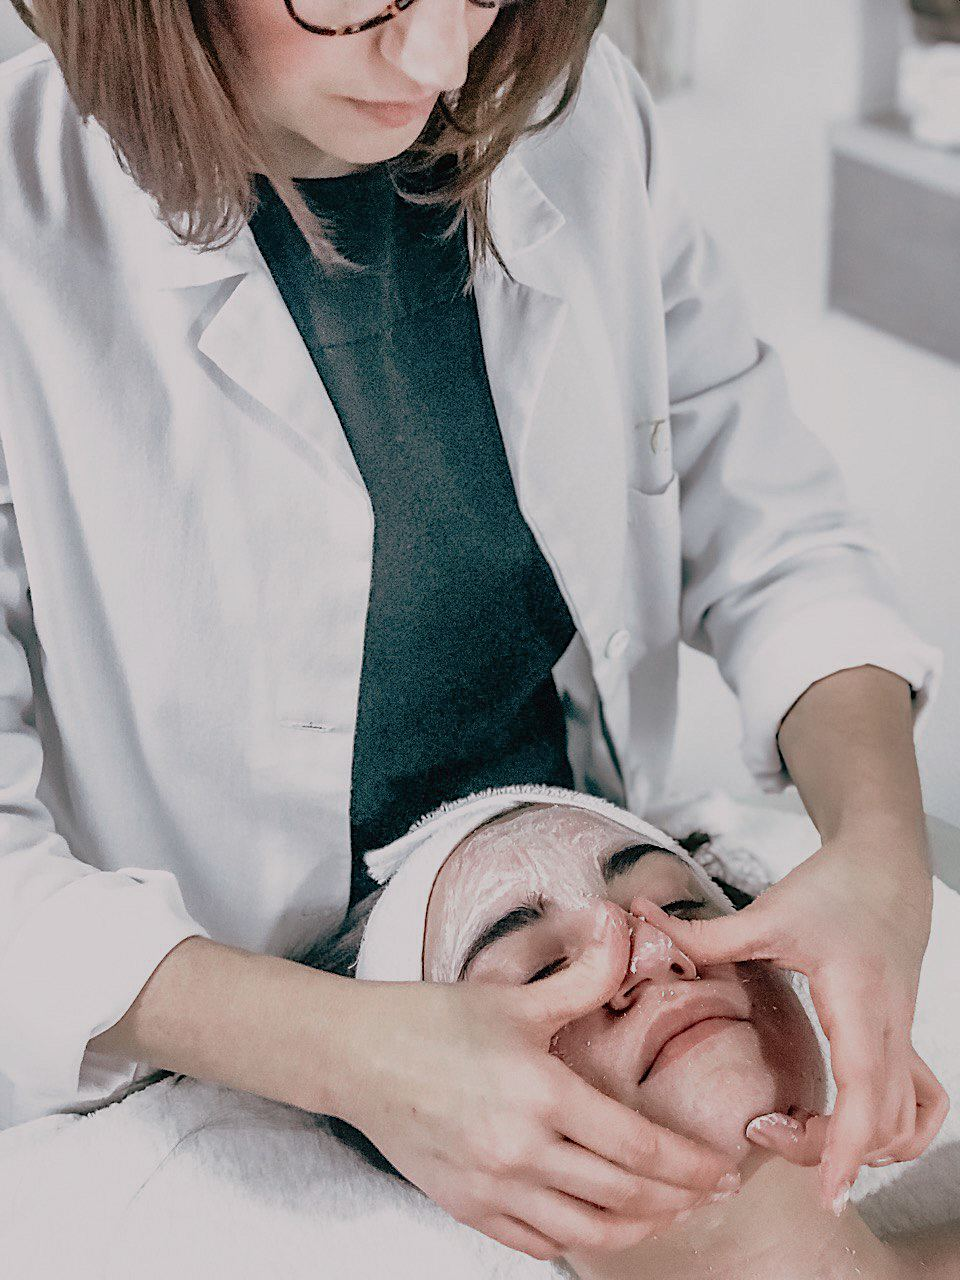 Tatiana Cutelli, a well-known expert and facial coach in Italy